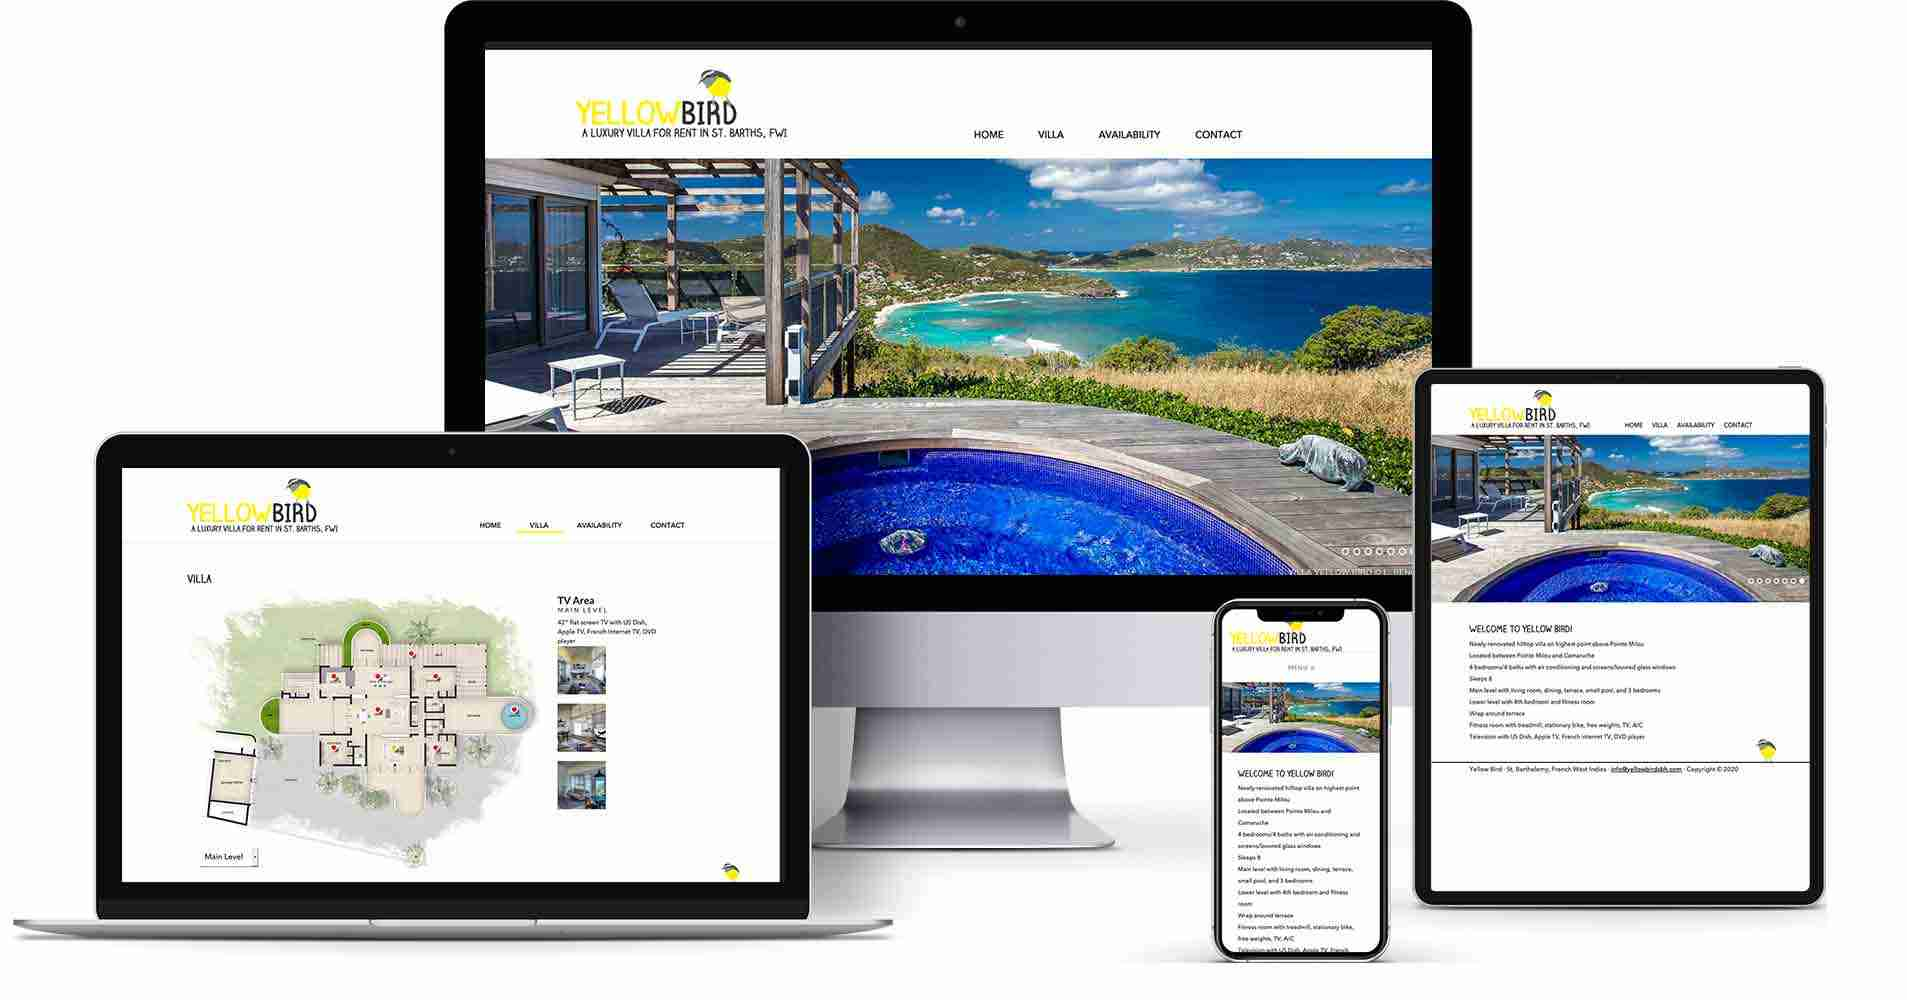 Yellow Bird SBH is an example of a vacation home rental website